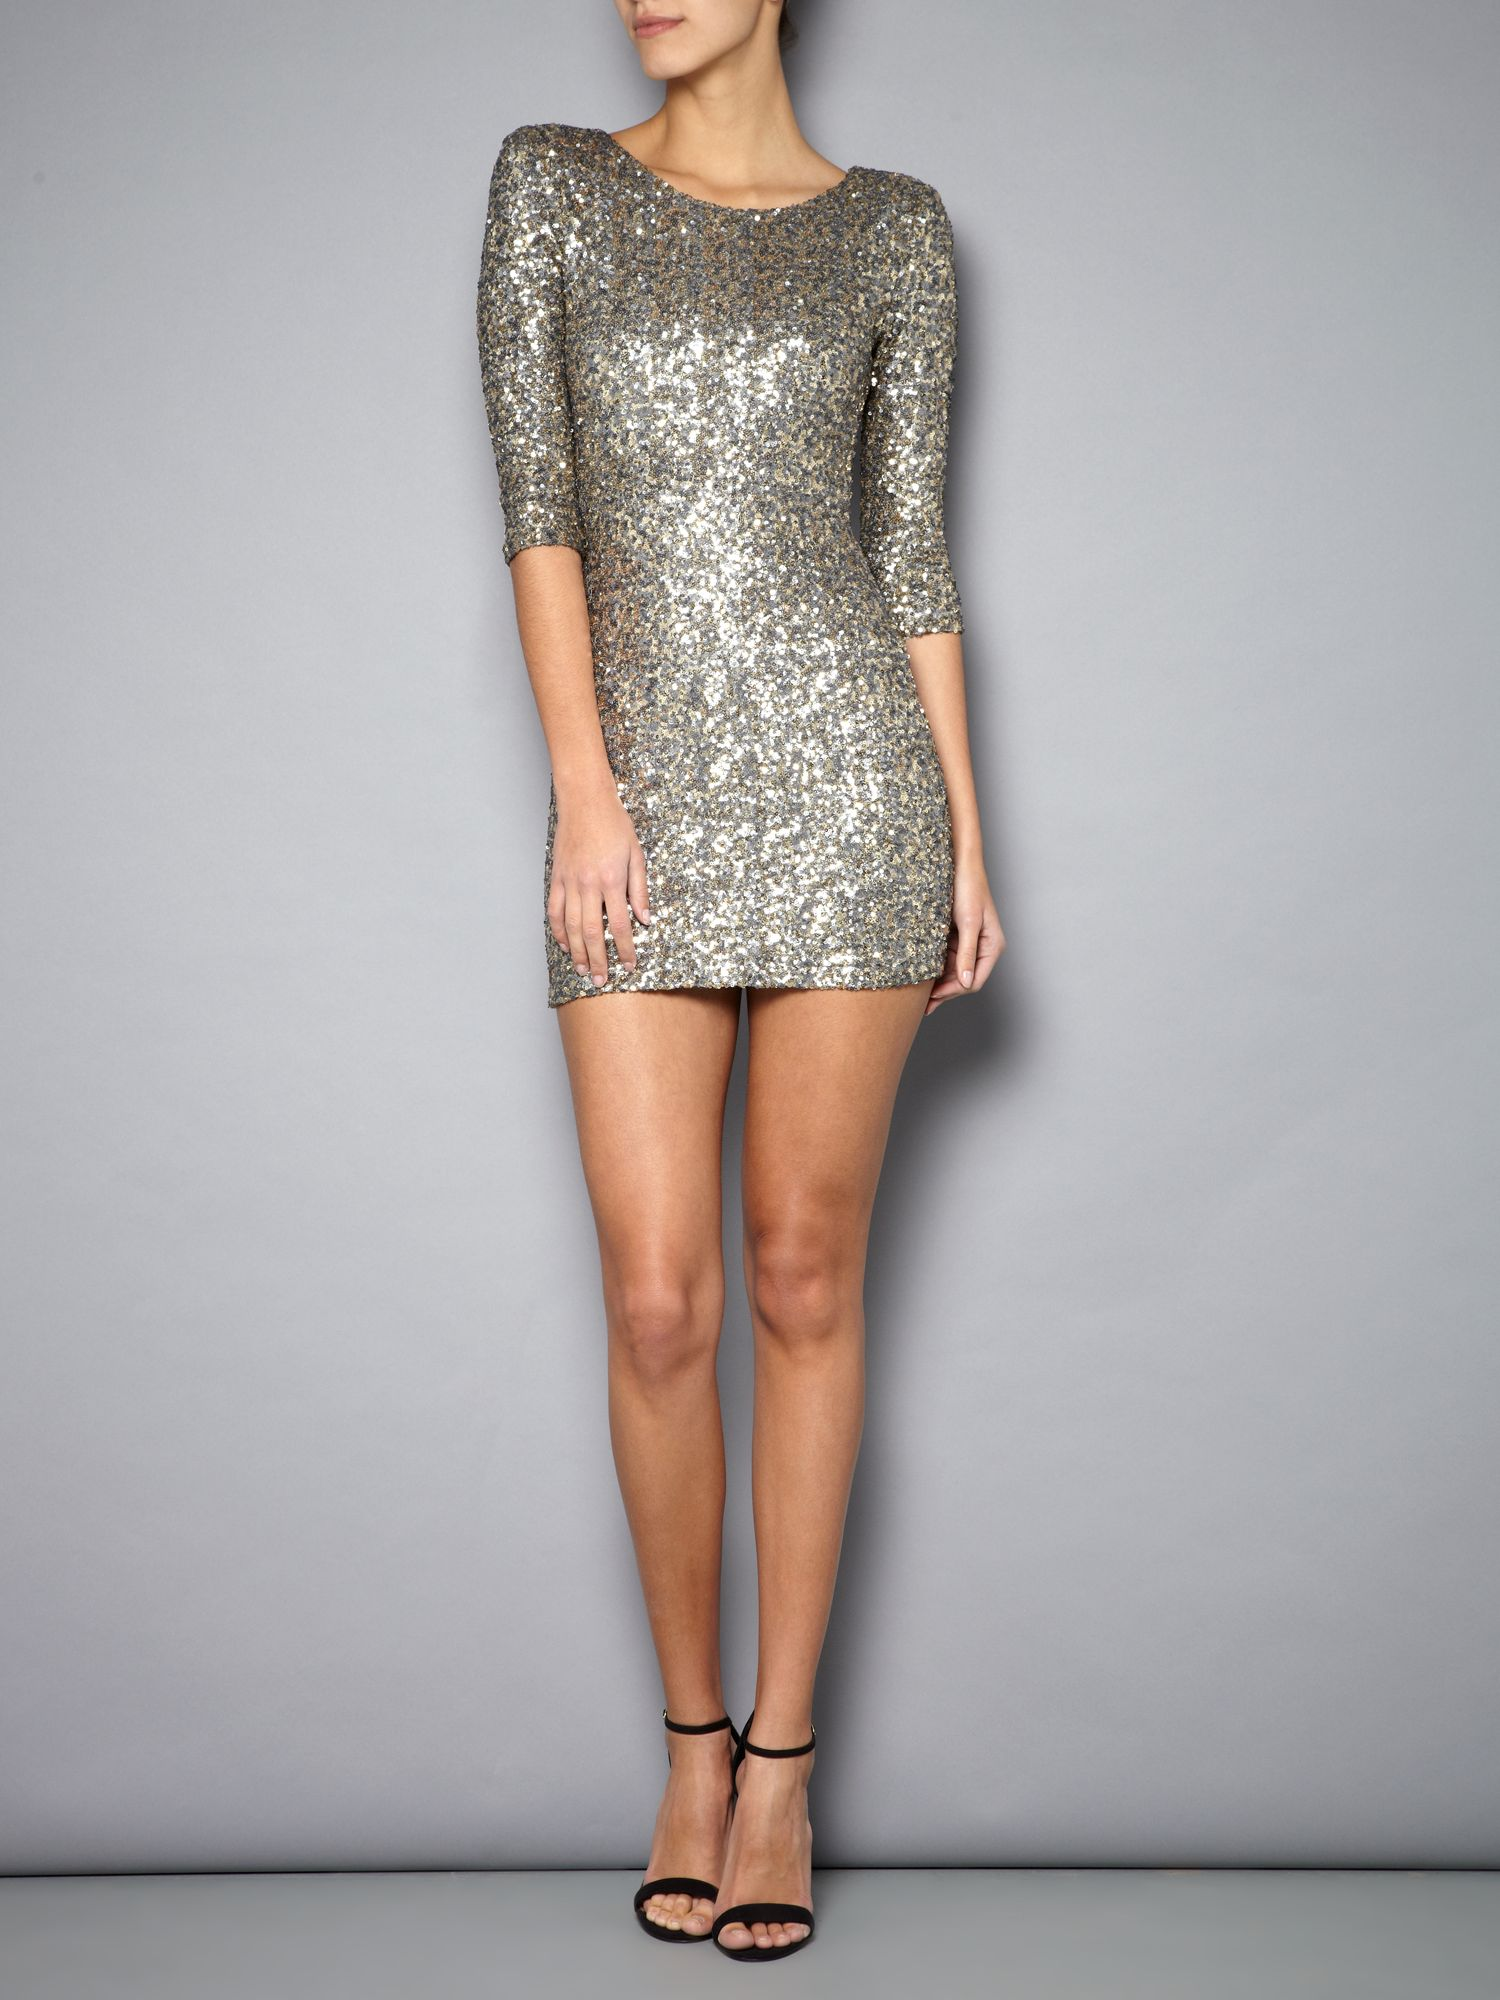 All over sequin Paris dress